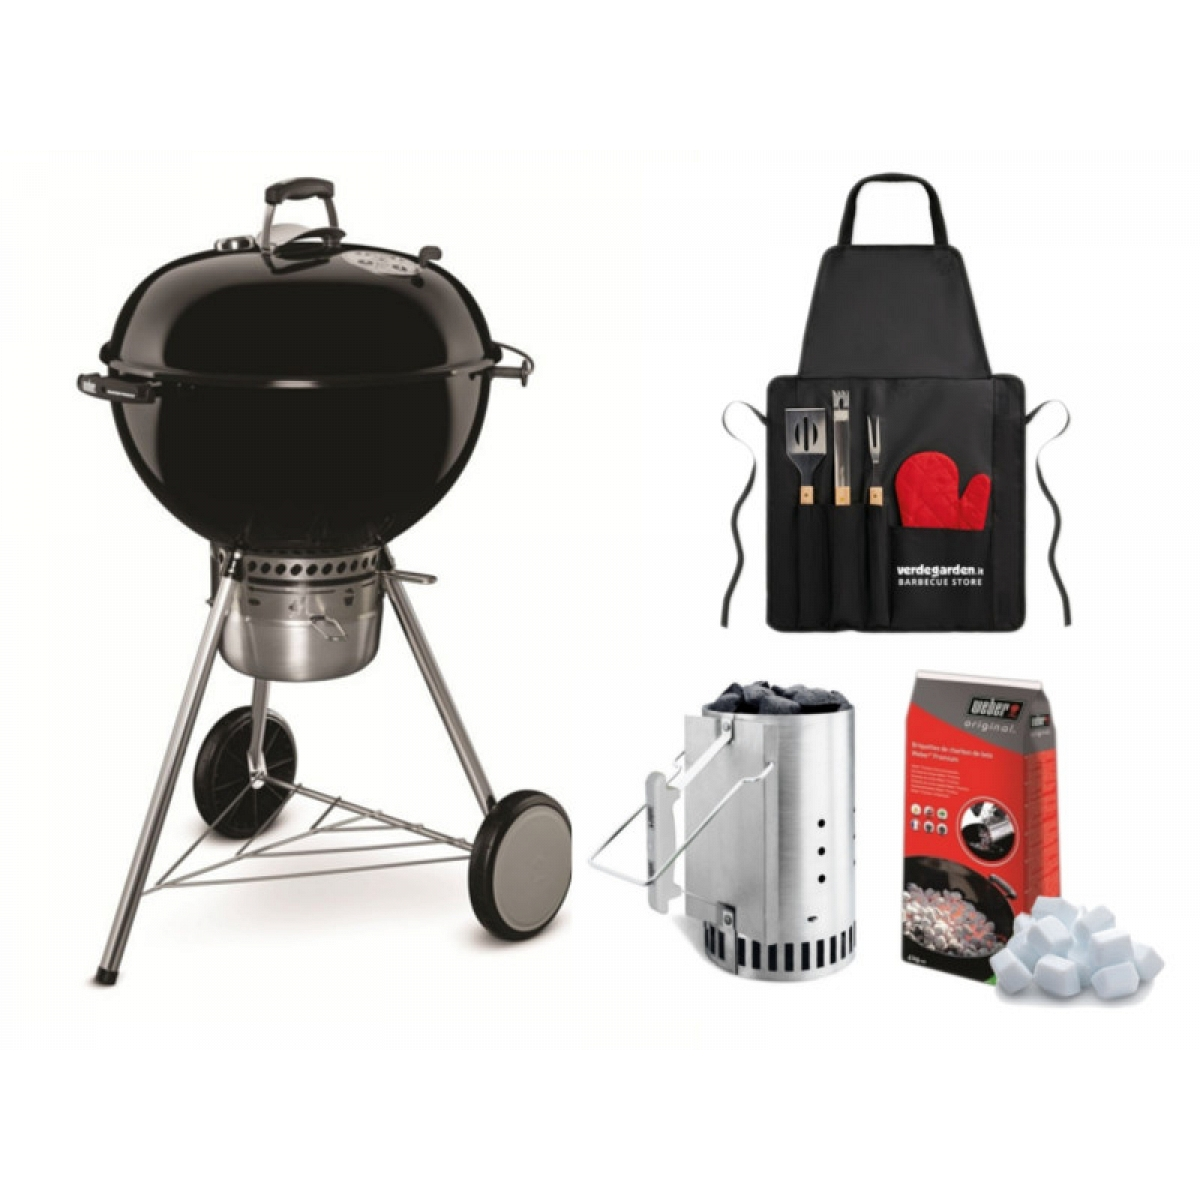 Charcoal weber master touch gbs 57 with chimney kit for Weber master touch